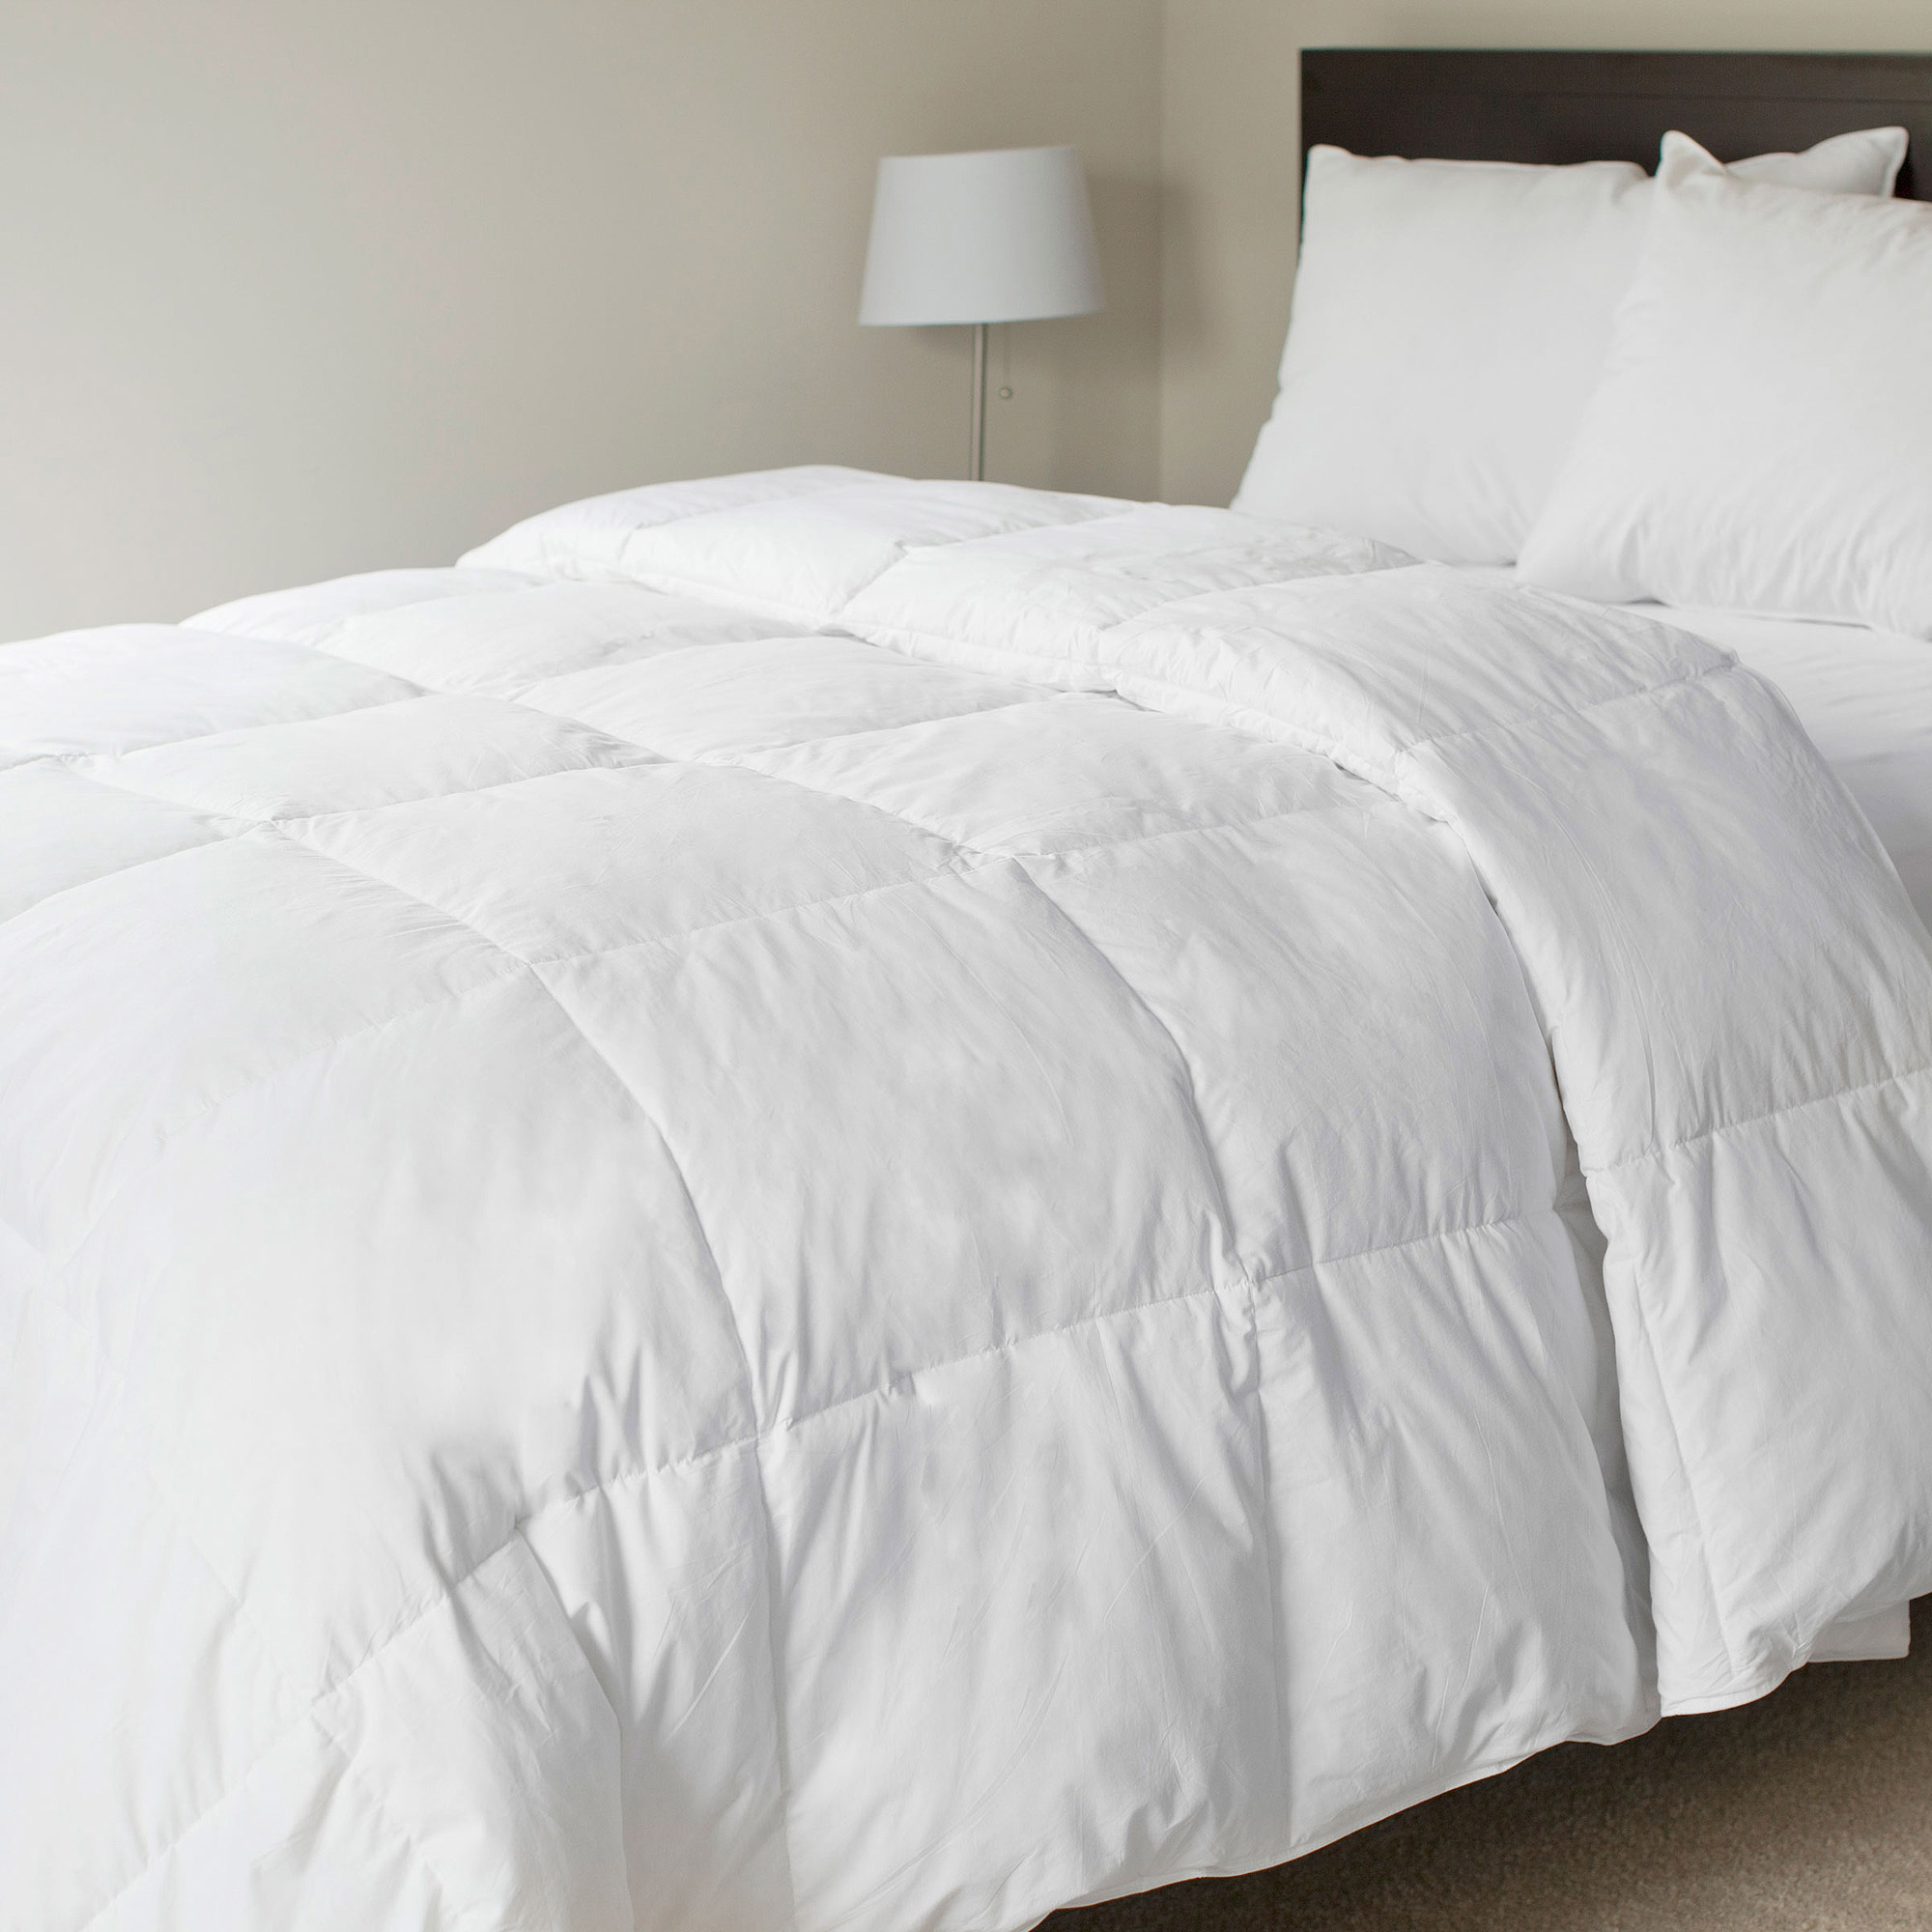 somerset home cotton feather down blend bedding comforter walmartcom